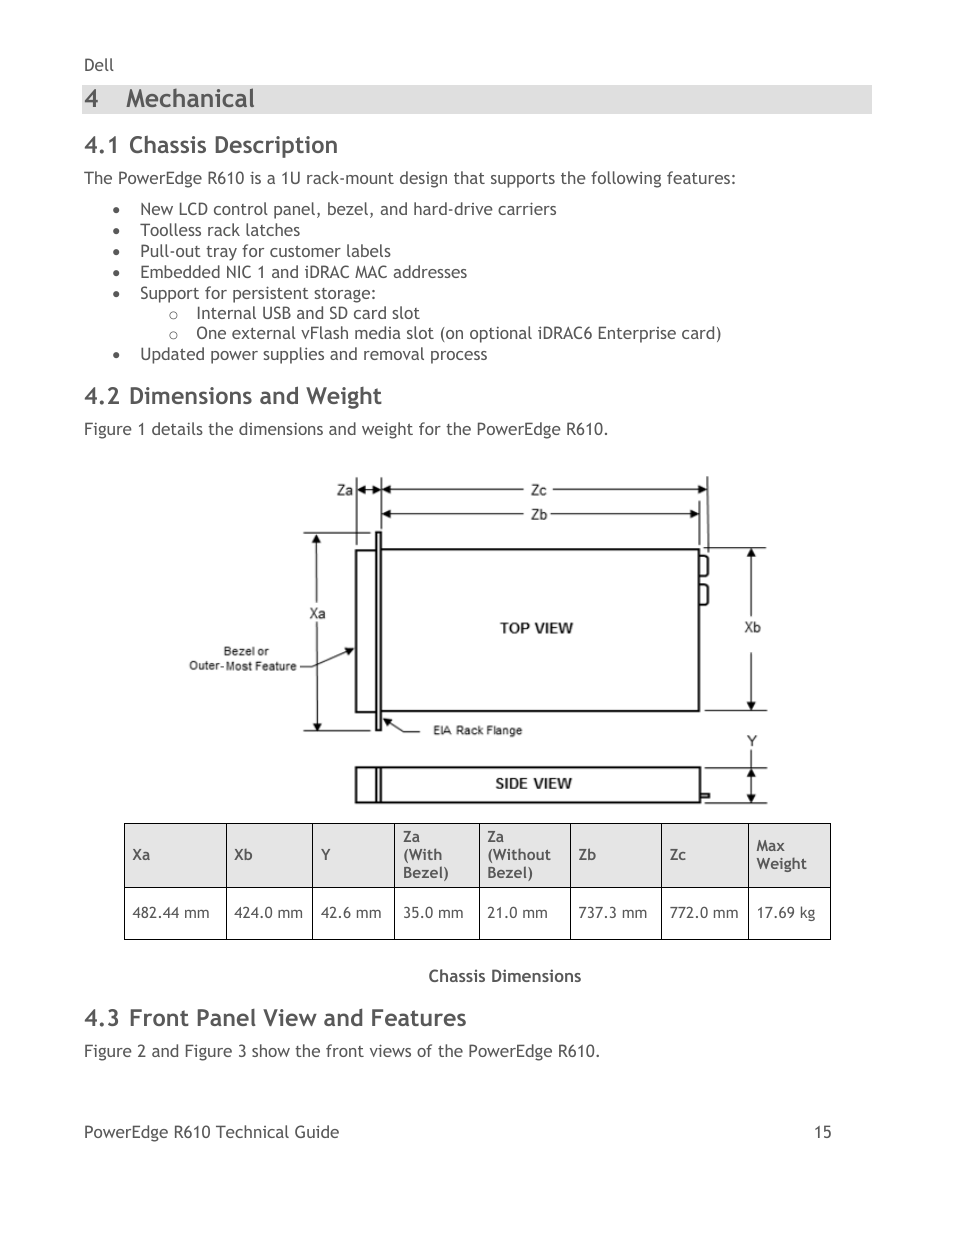 Mechanical, Chassis description, Dimensions and weight